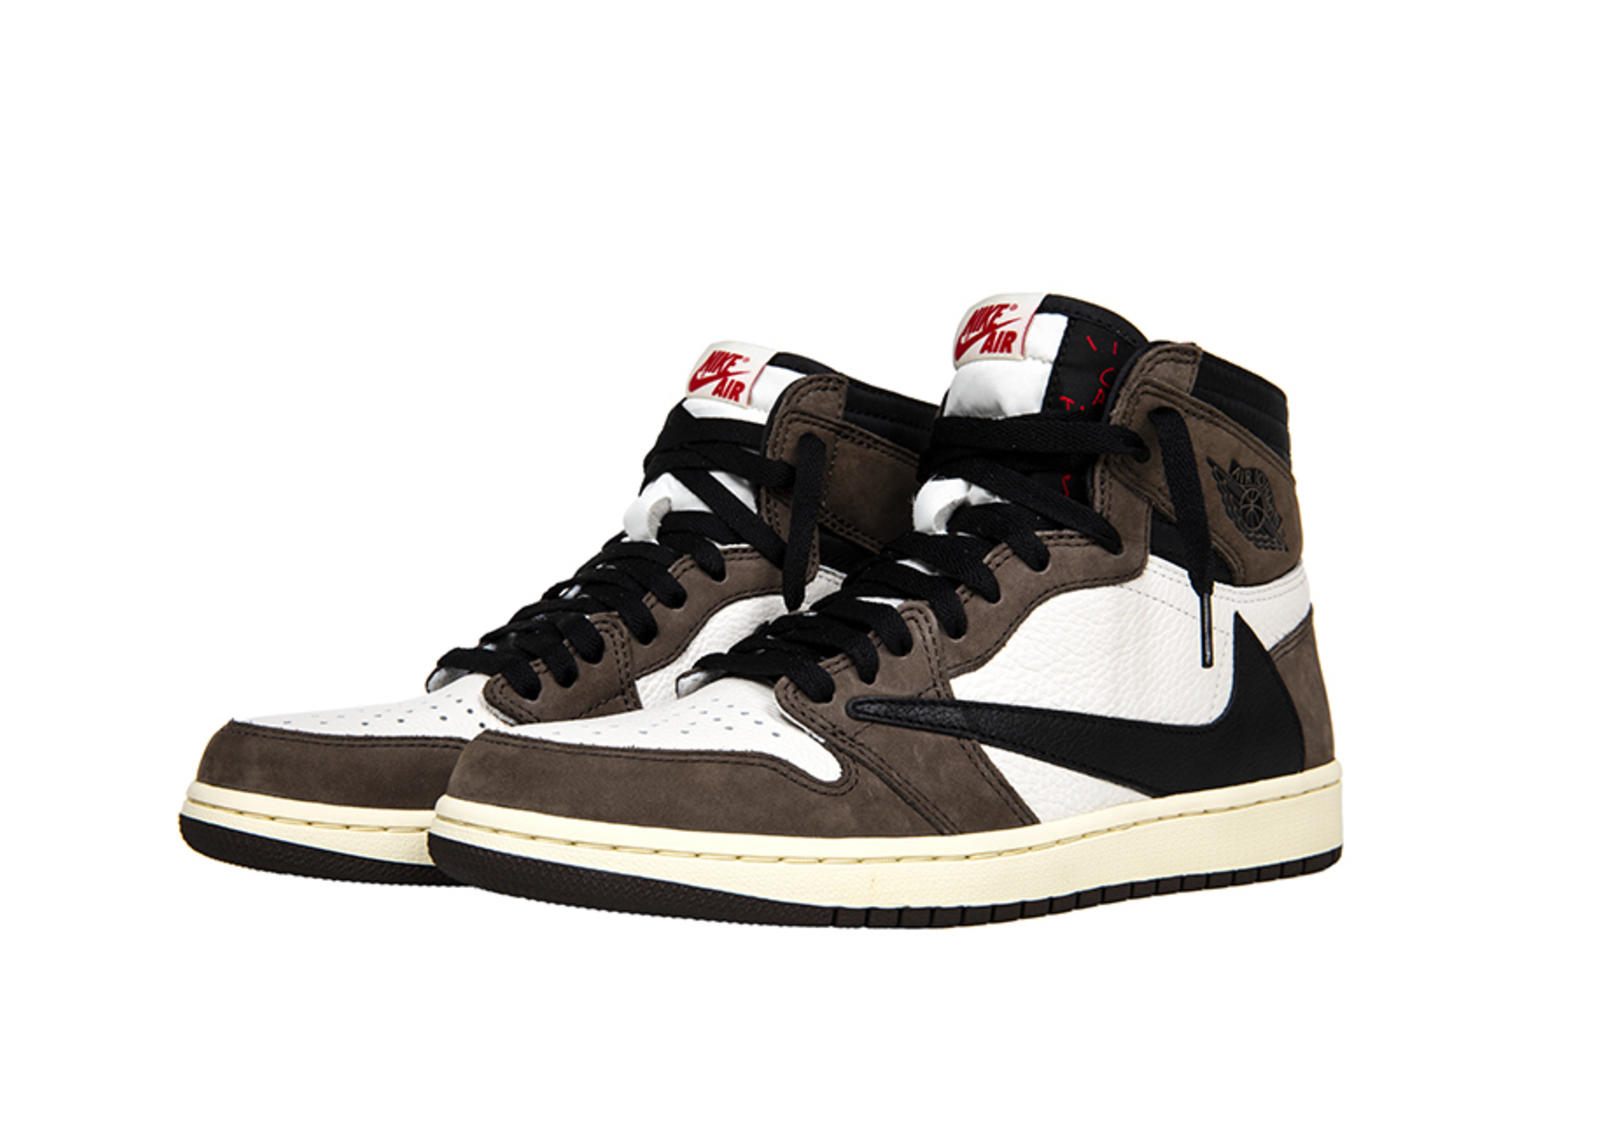 buy popular 774fa 5fce8 Travis Scott Air Jordan I High OG and Apparel Collection ...